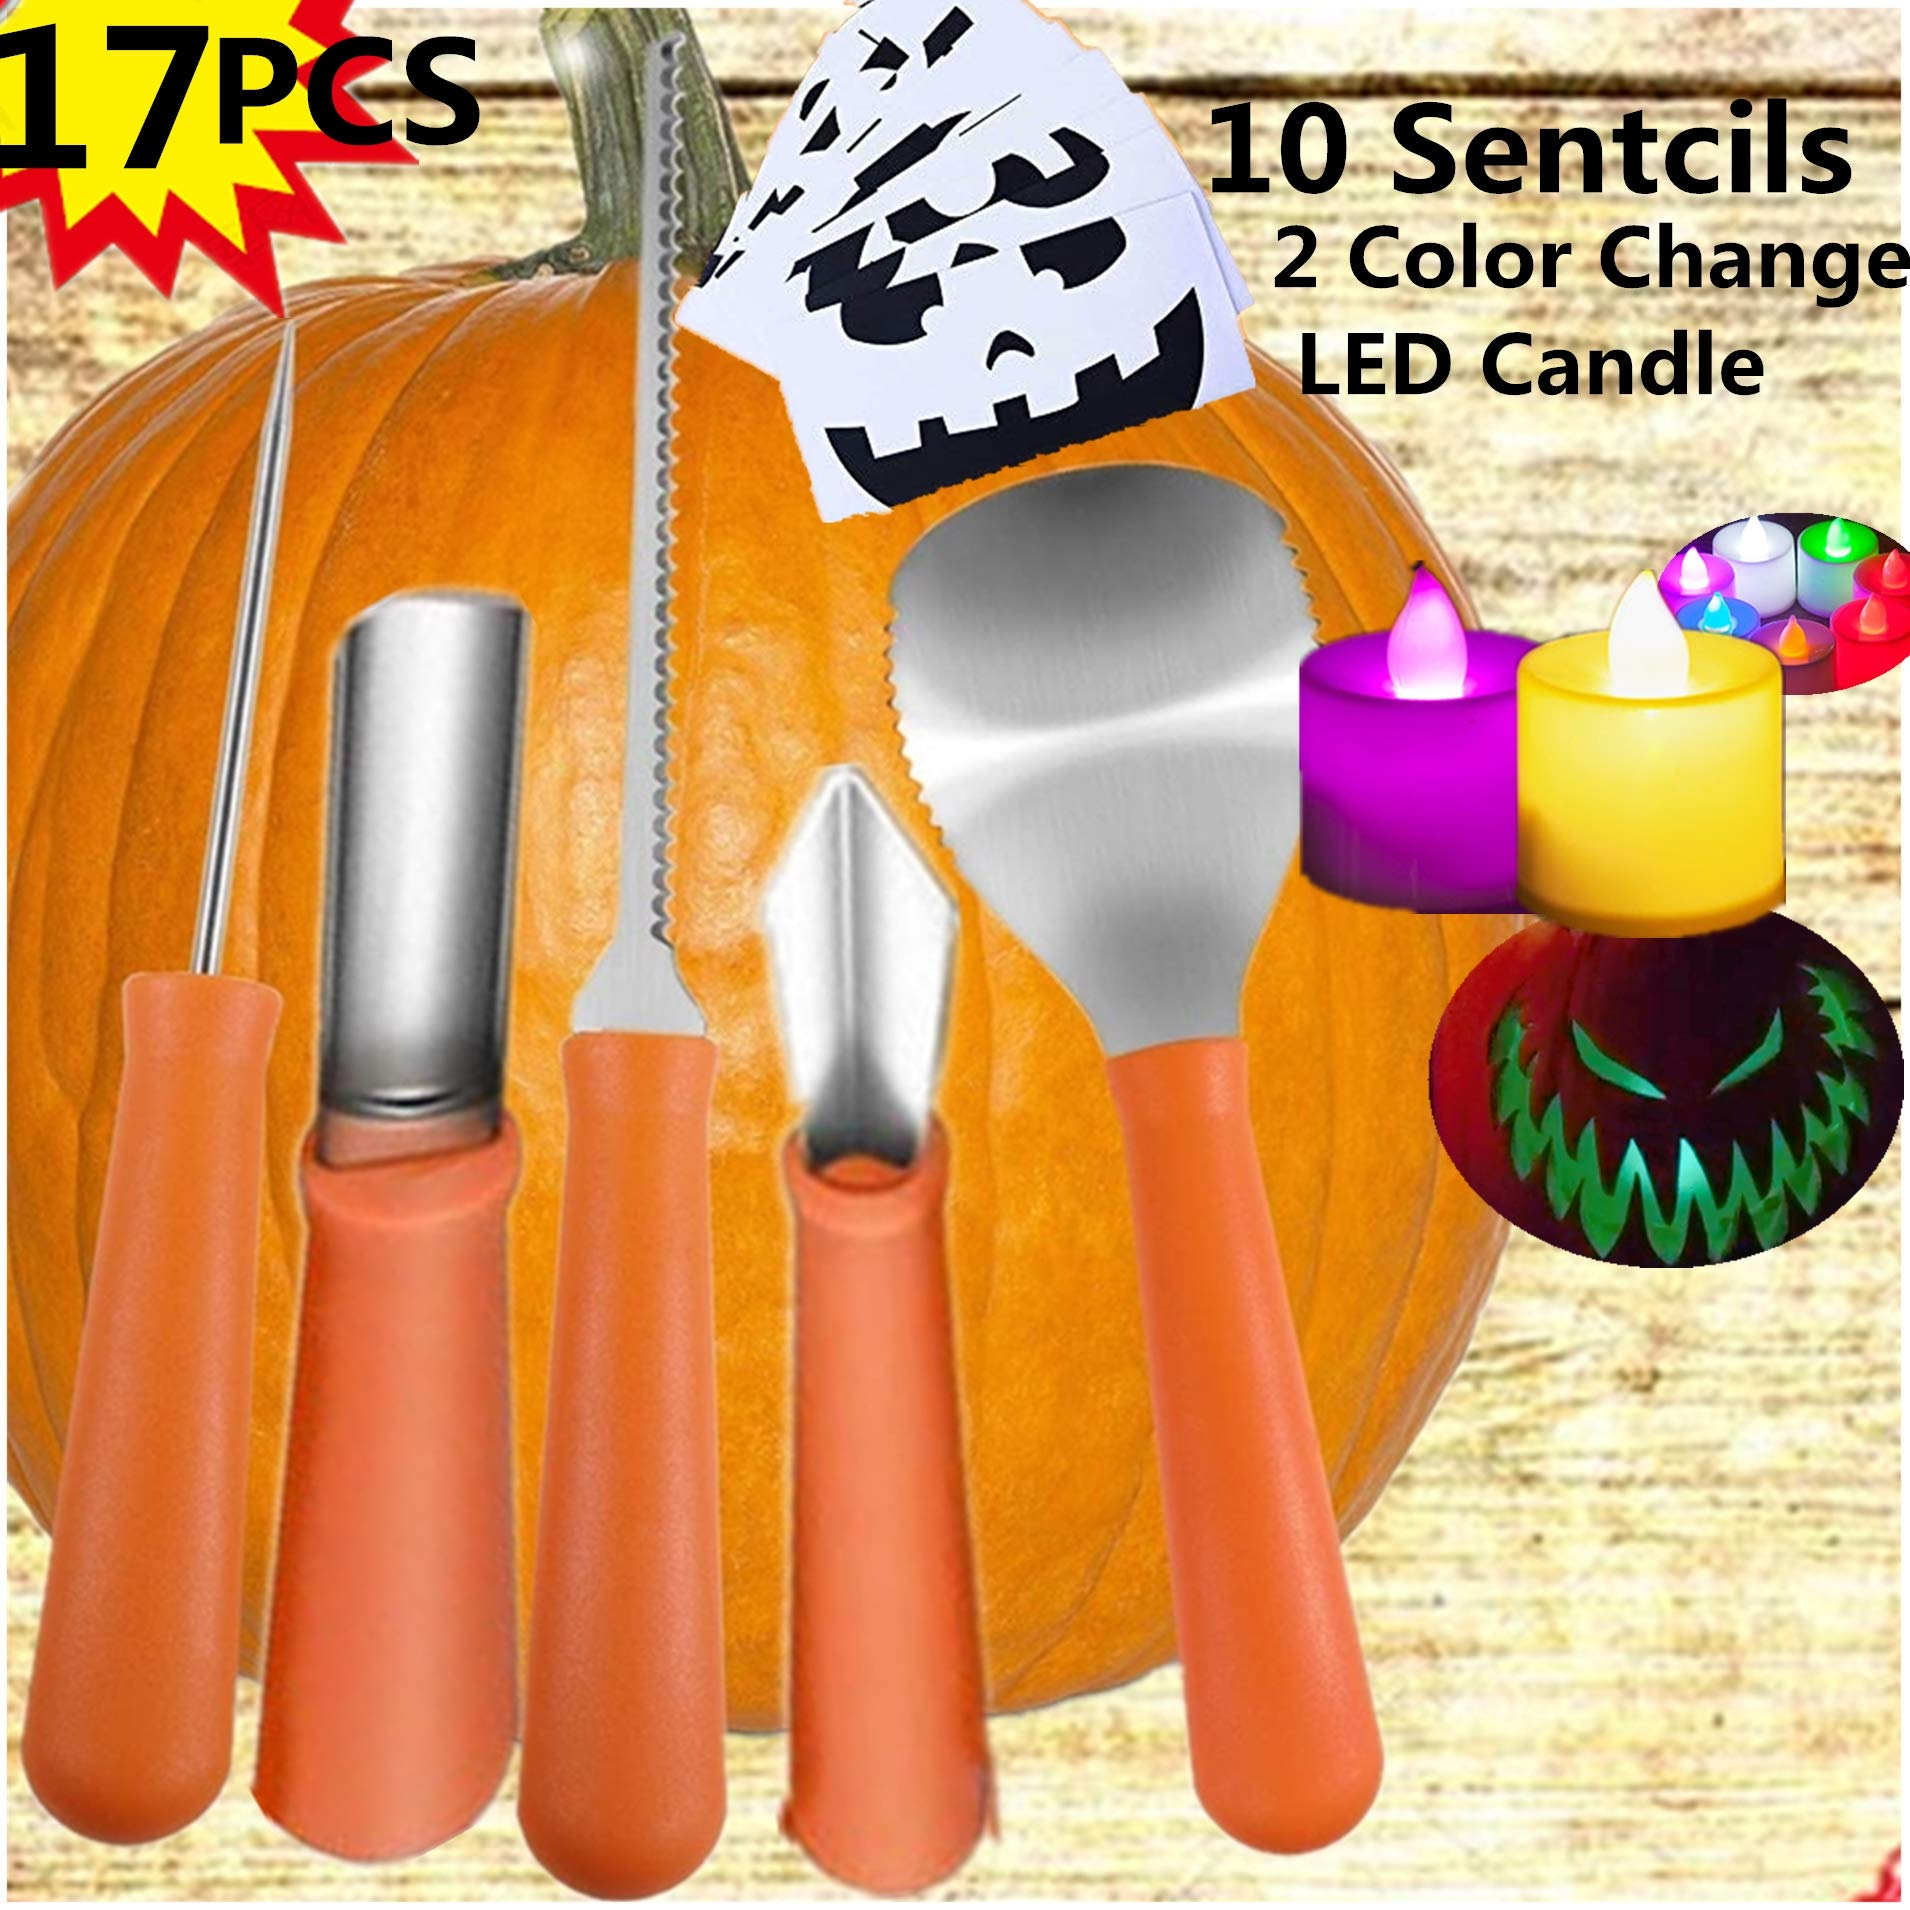 Professional Pumpkin Carving Kit- Heavy Duty Stainless Steel Tools Jack-O-Lantern Sculpting Set Halloween Party Supplies 2018 Outdoor & Yard Décor Free 2 Flickering Candles,10 Carving Stencils